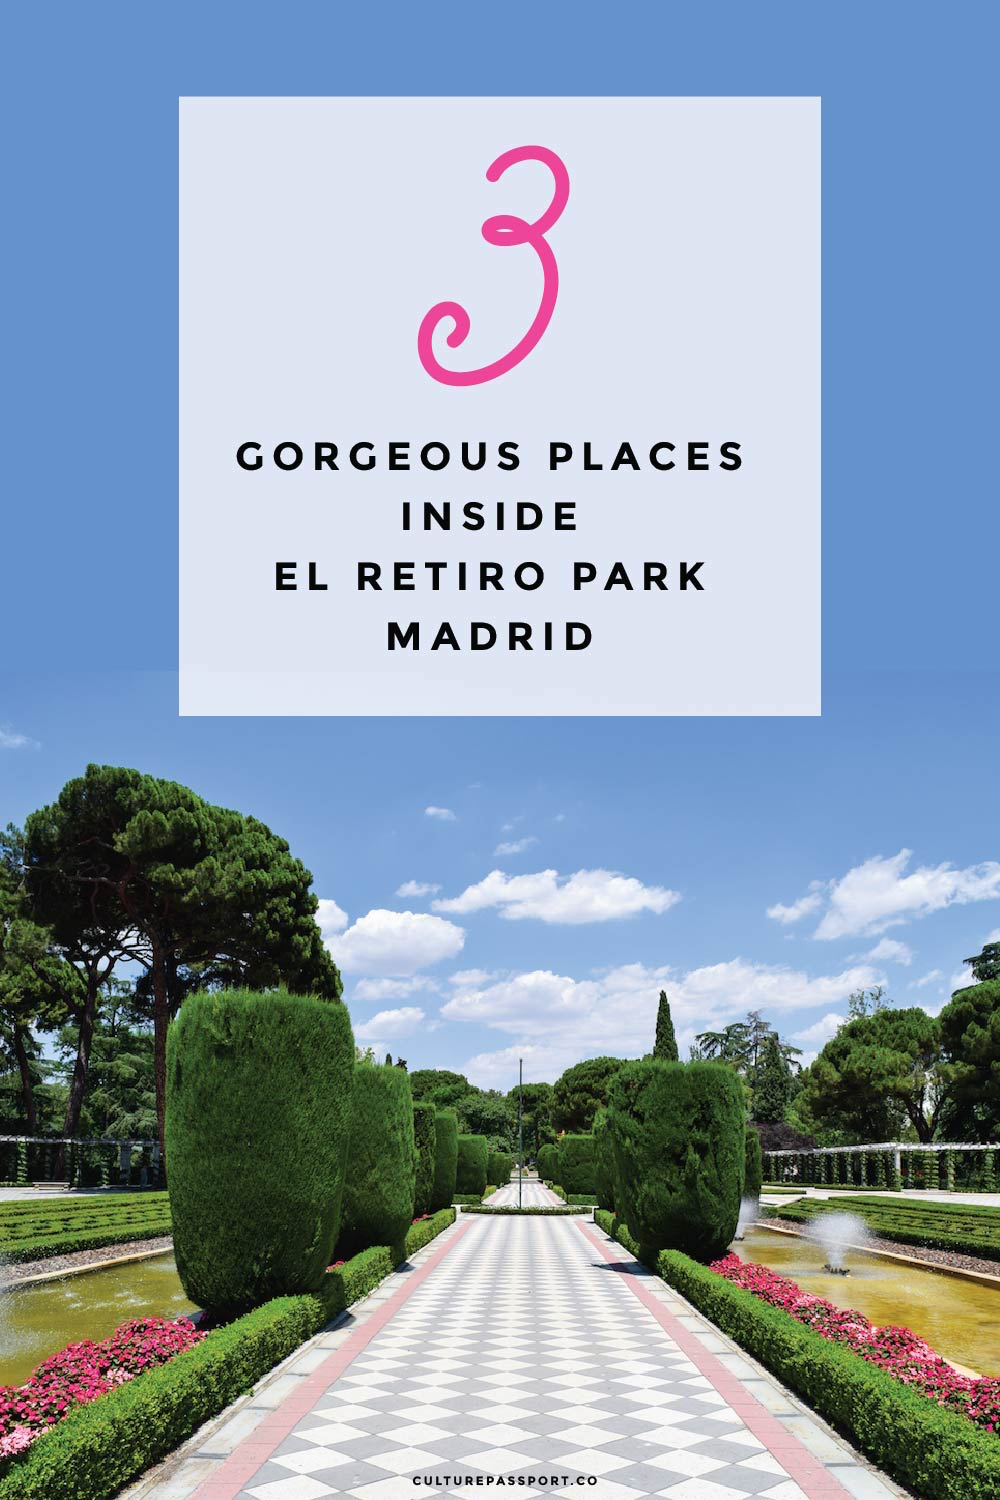 Don't miss seeing these three beautiful spots during your trip to Madrid!